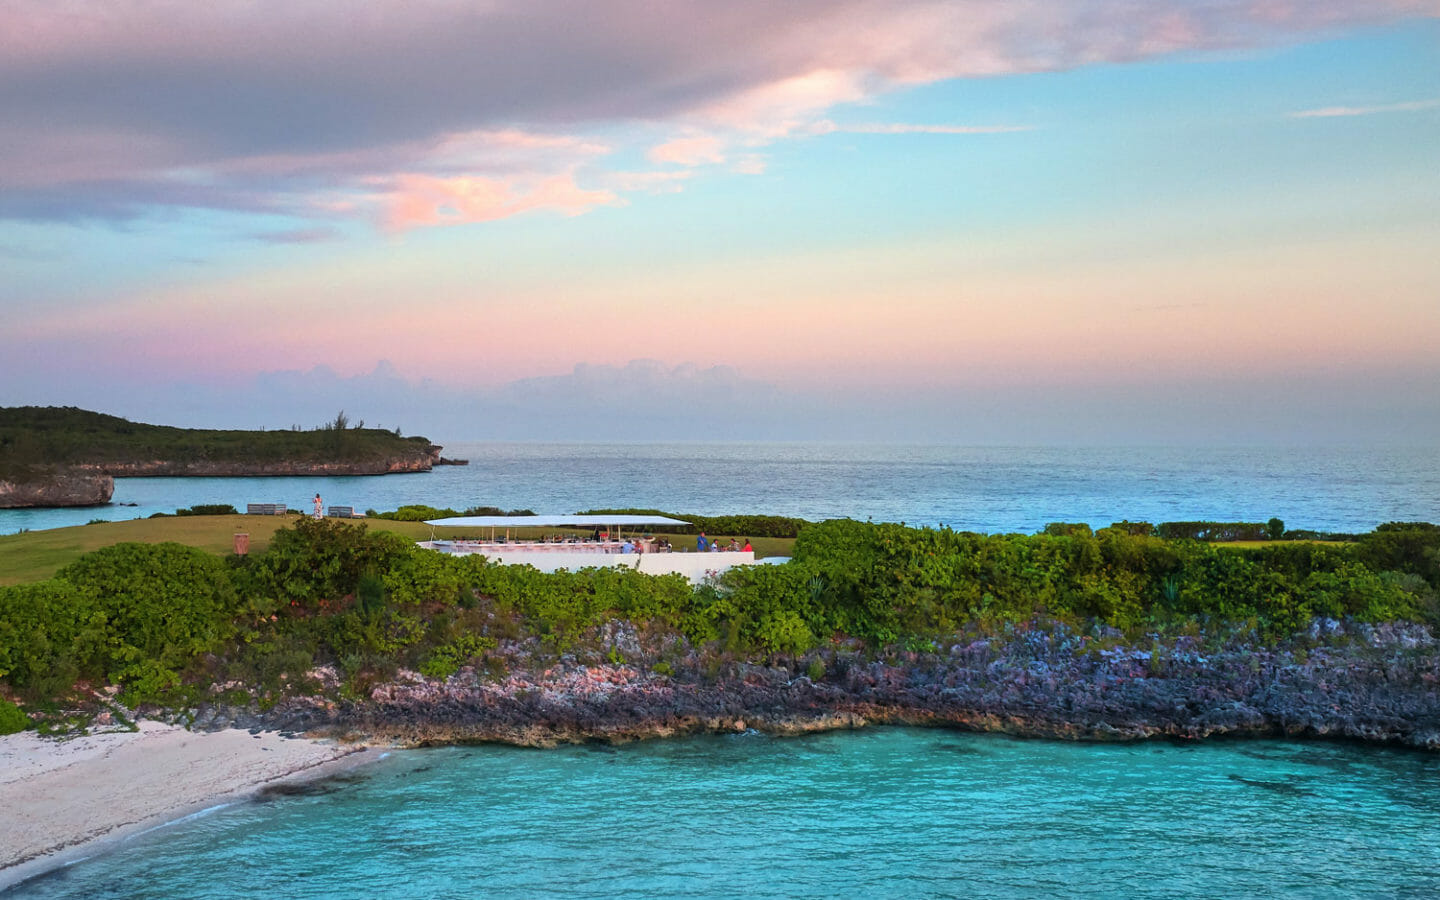 Event venue ocean | The Cove Eleuthera Resort Bahamas